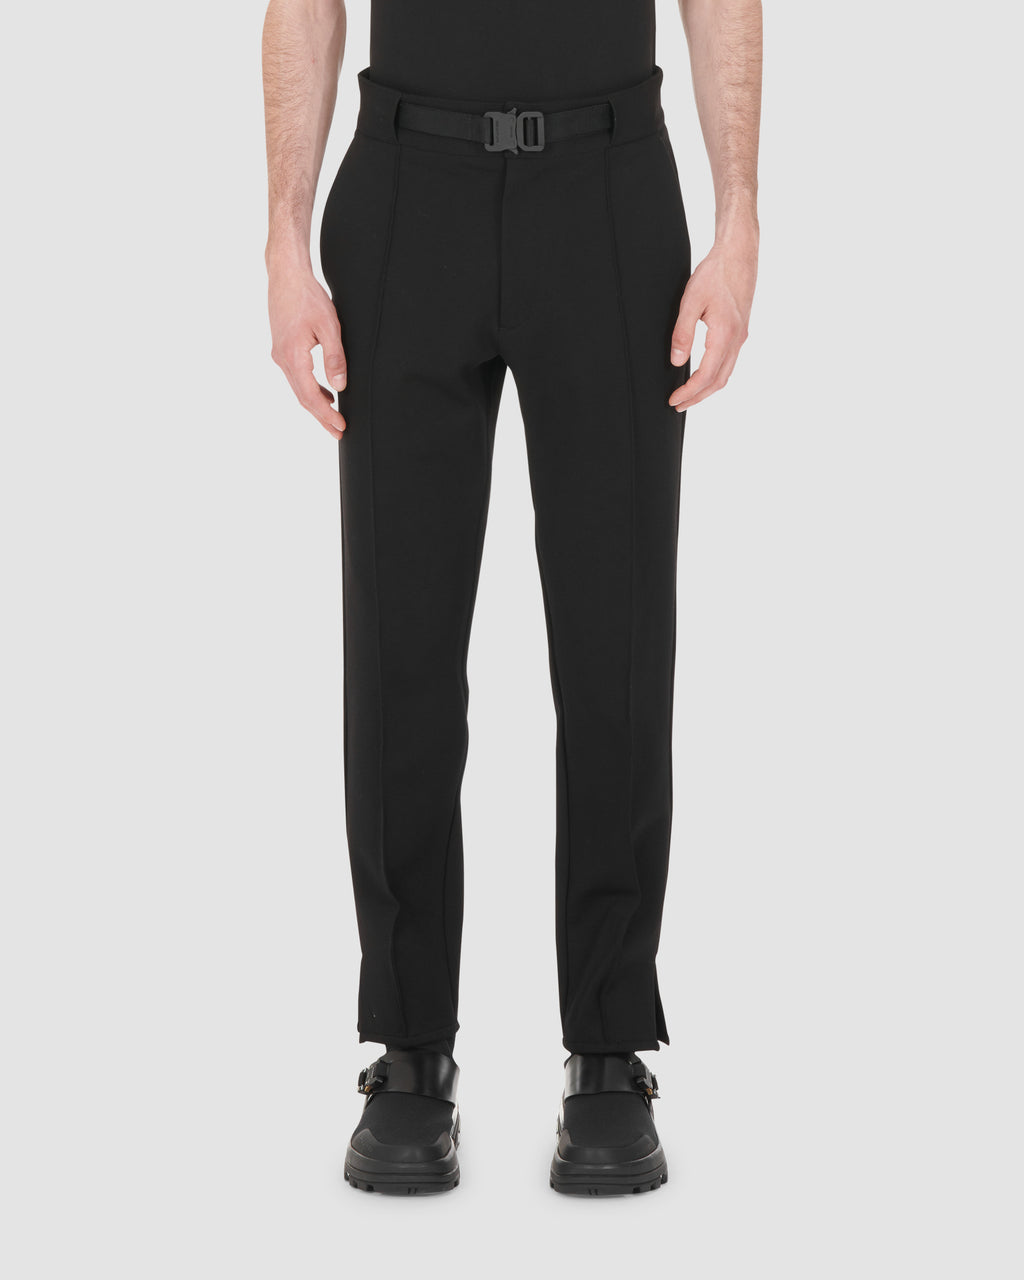 1017 ALYX 9SM | BLACK CLASSIC TROUSERS W BUCKLE | Pants | Black, Google Shopping, Man, MEN, PANTS, S20, S20 Drop II, Trousers